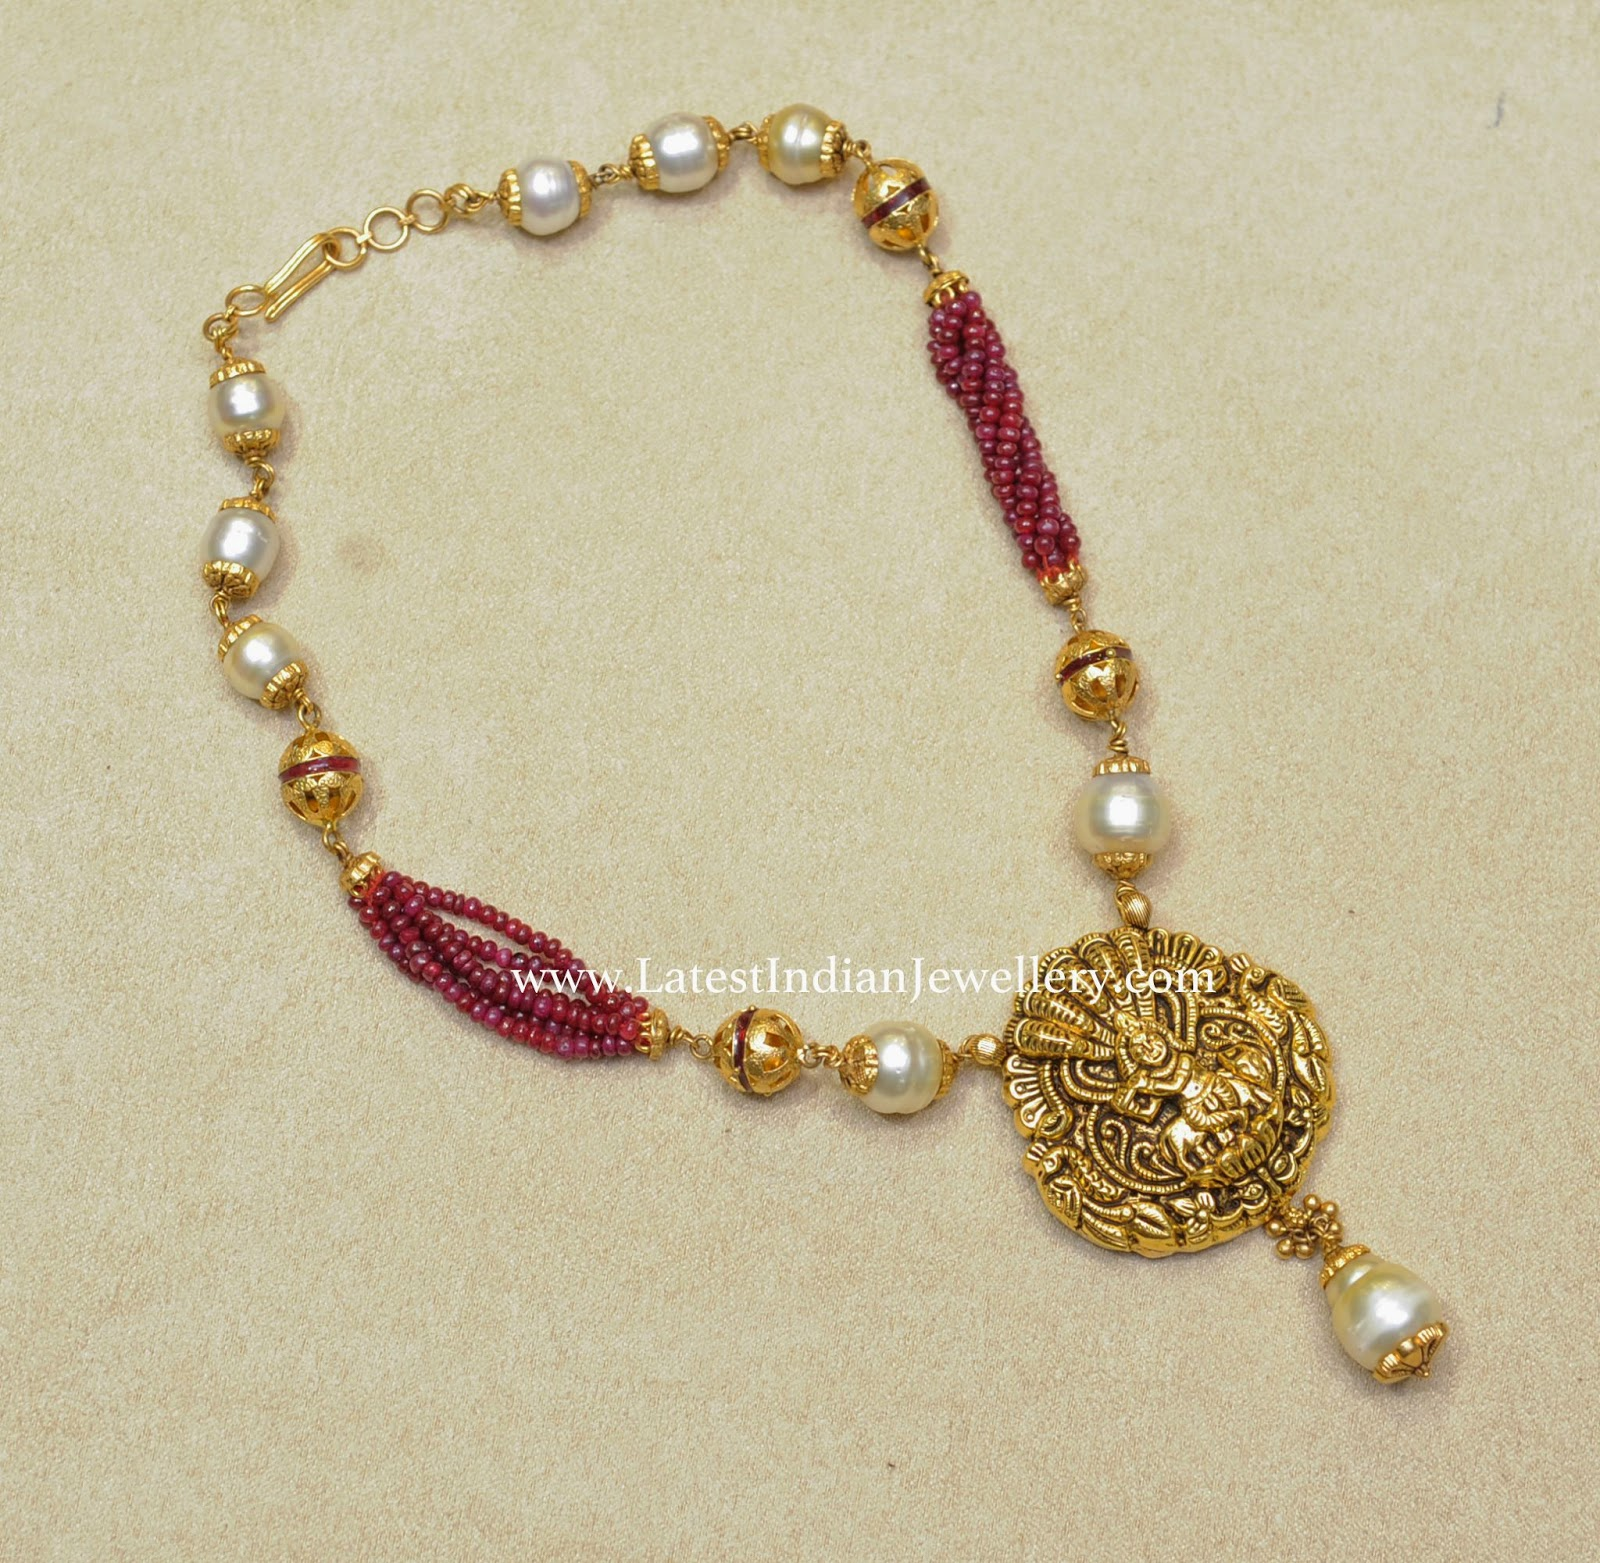 Pearls And Ruby Beads Fancy Necklace